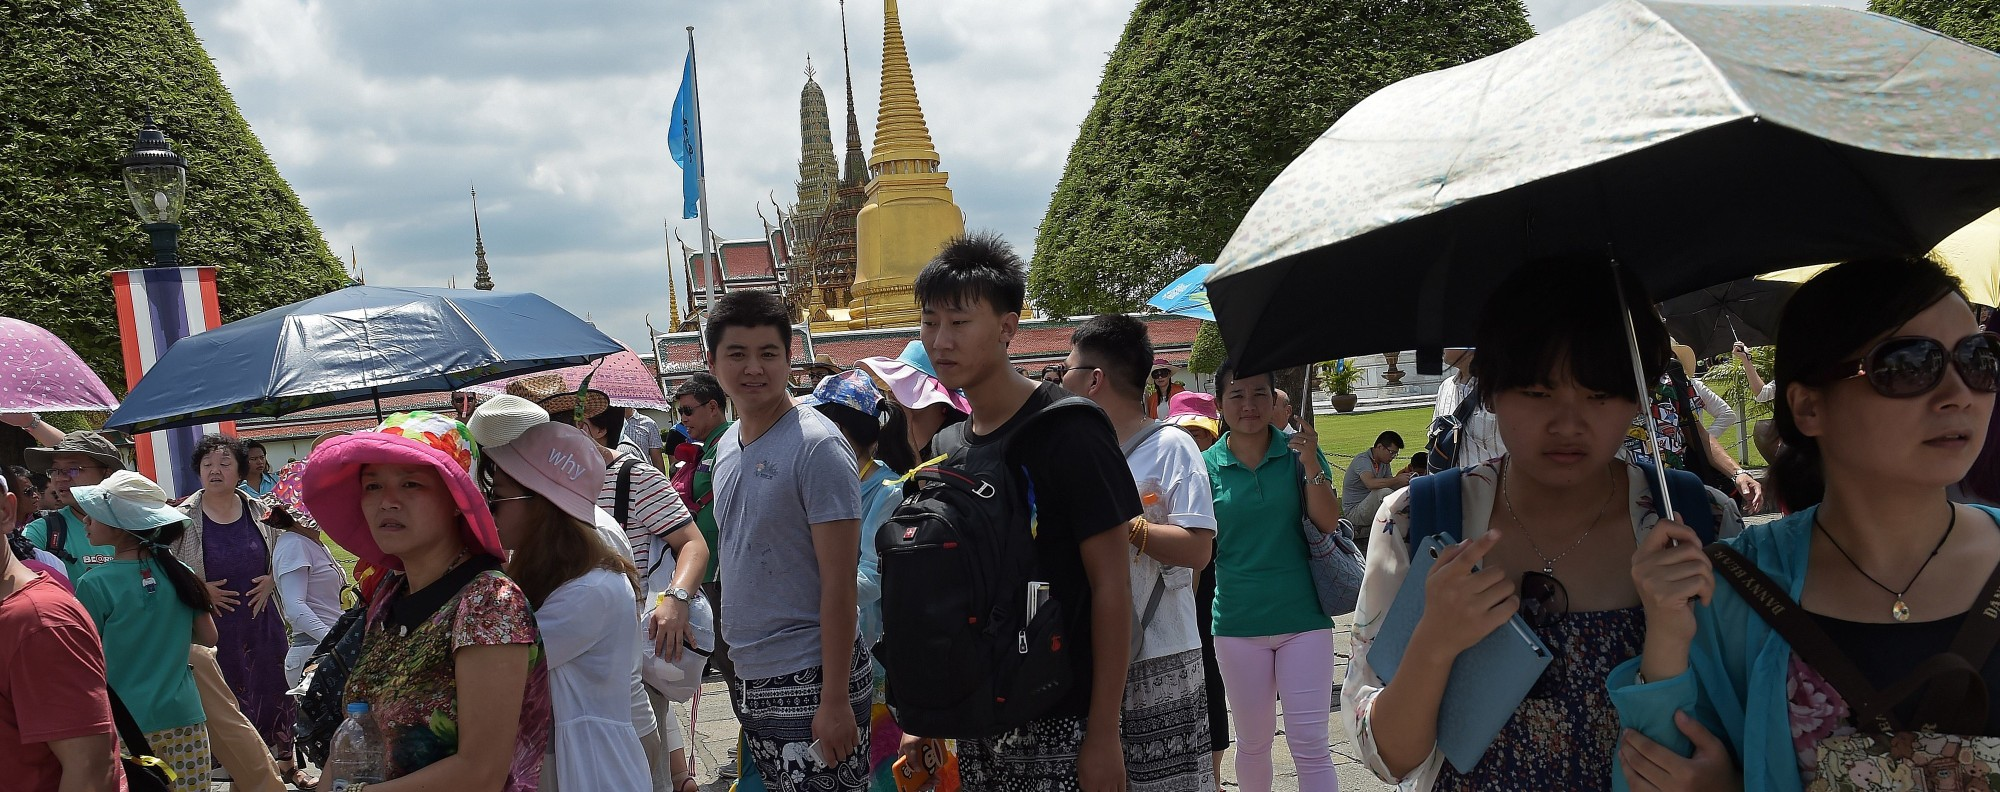 Tourism is expected to boost the Thai economy. Photo: AFP